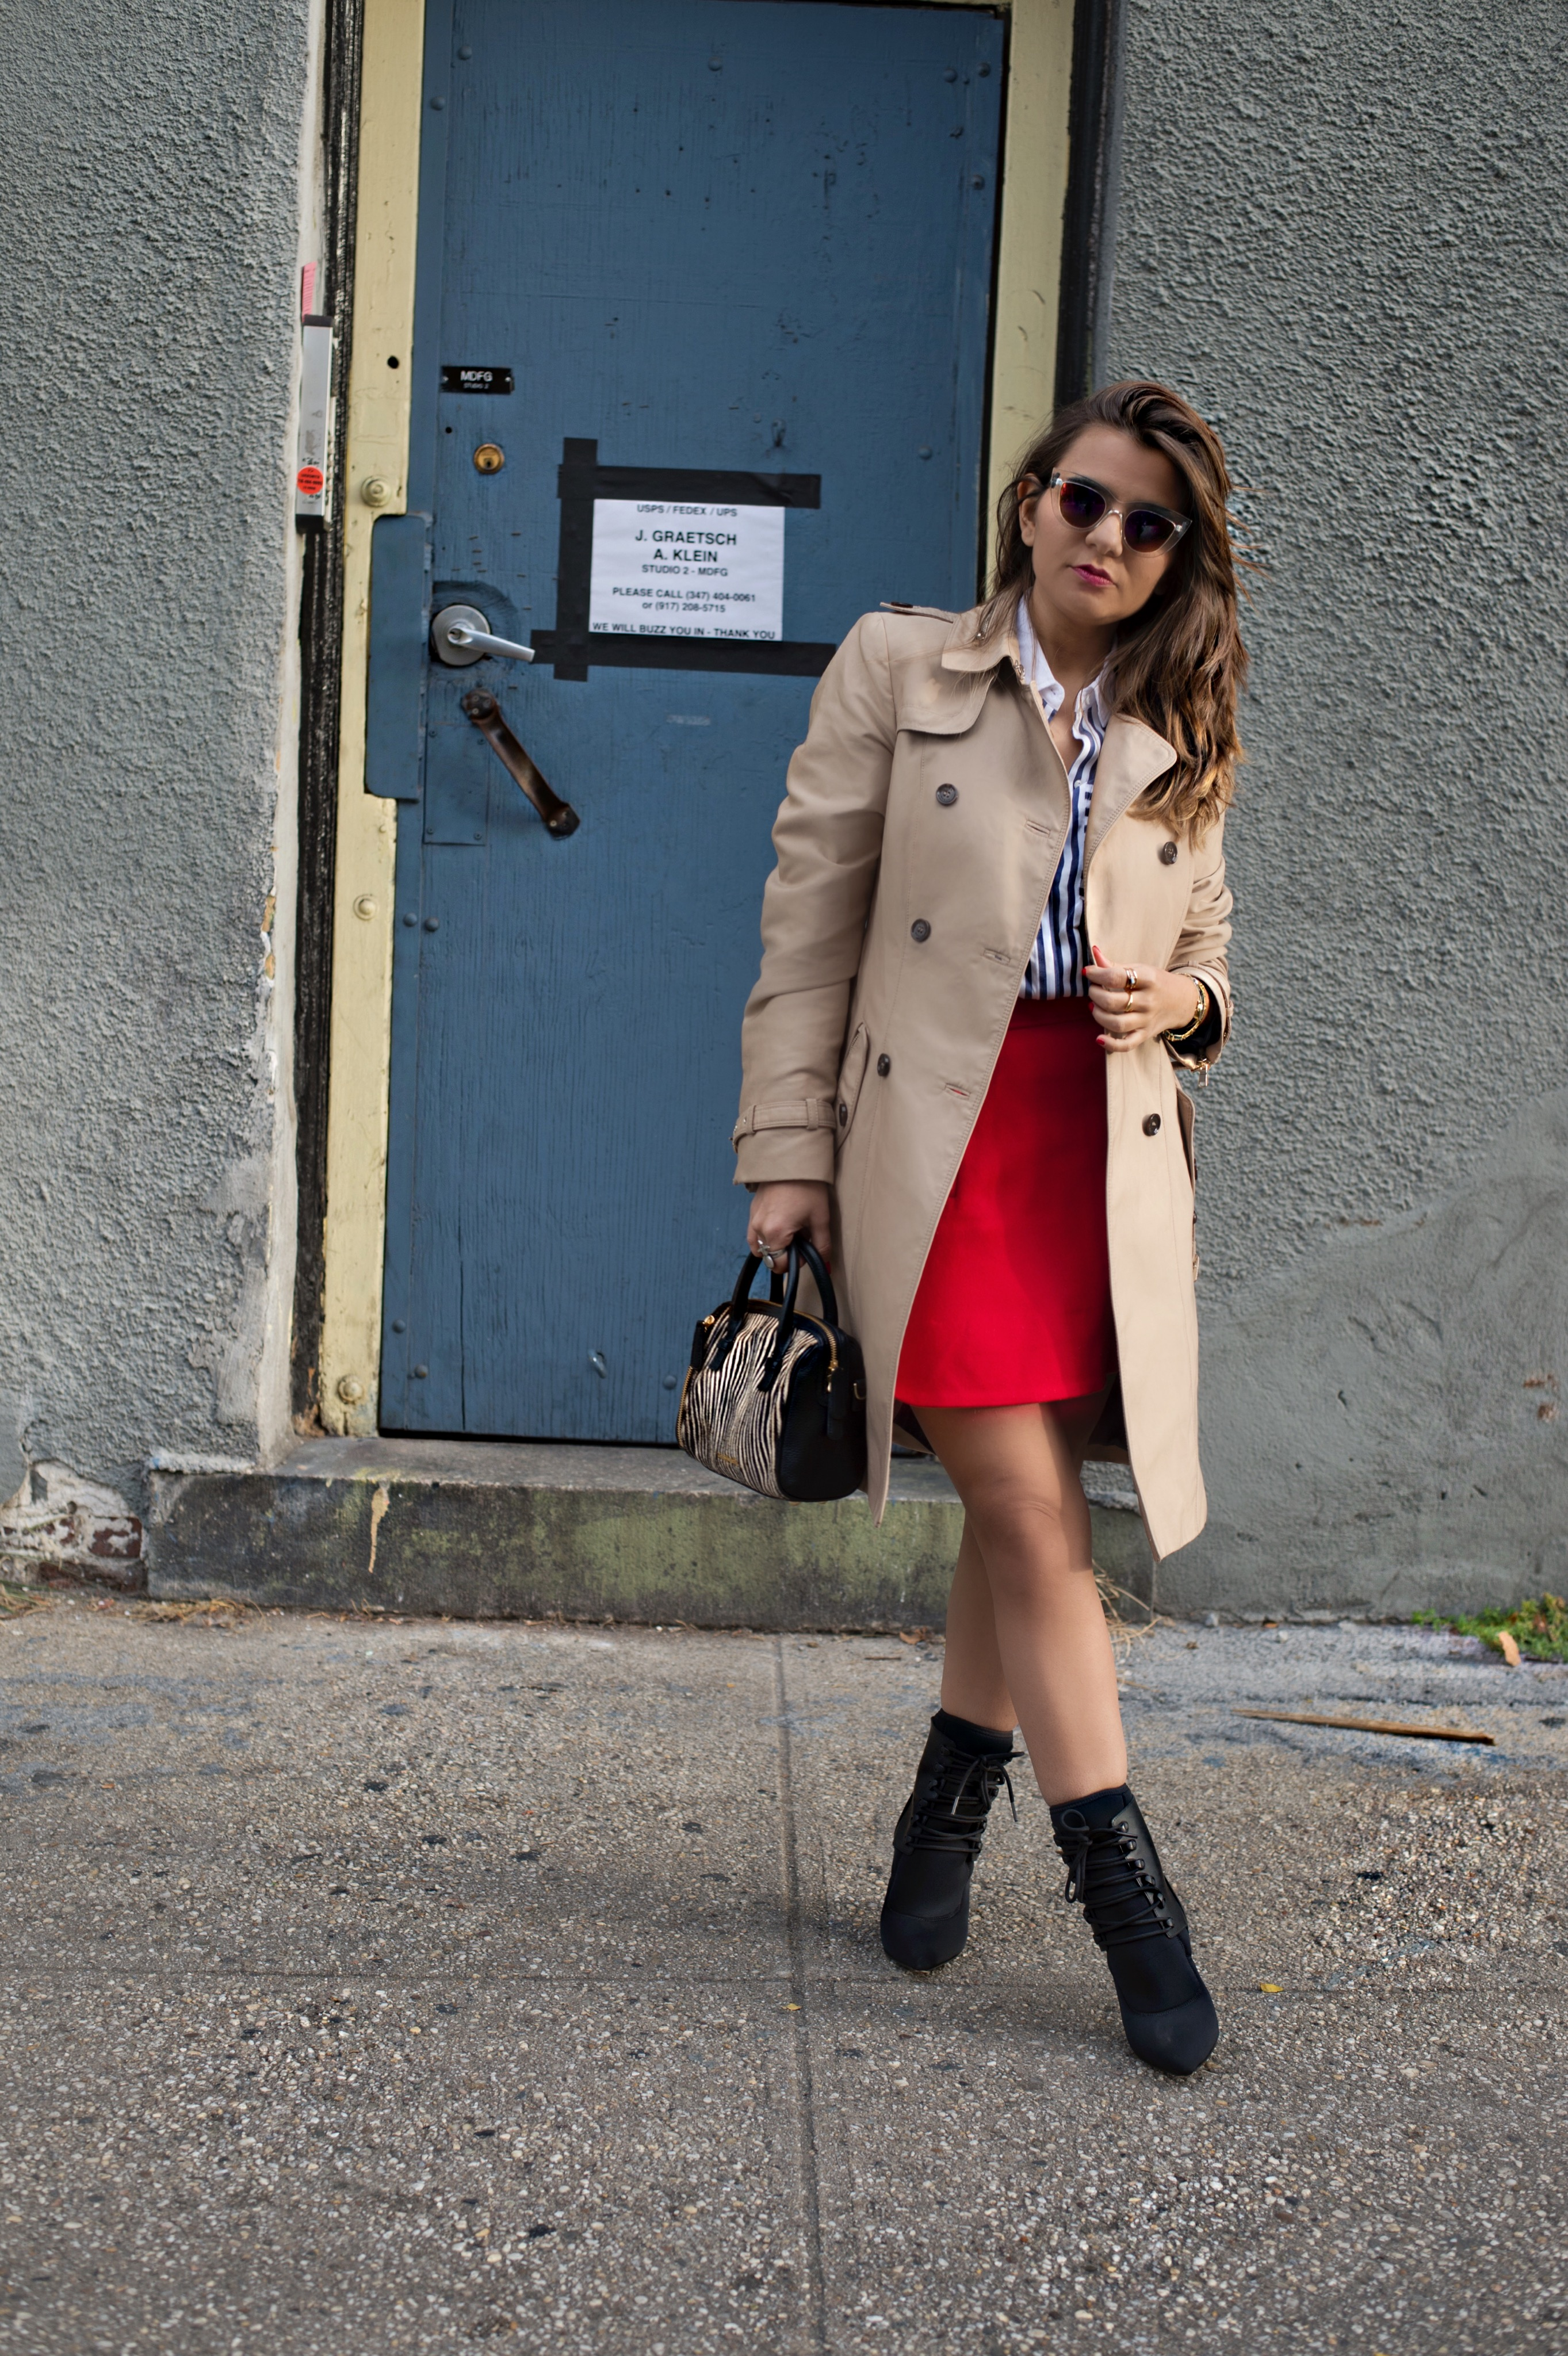 j-crew-a-line-red-skirt-socks-booties-trech-coat-stripe-shirts-street-style-alley-girl-3